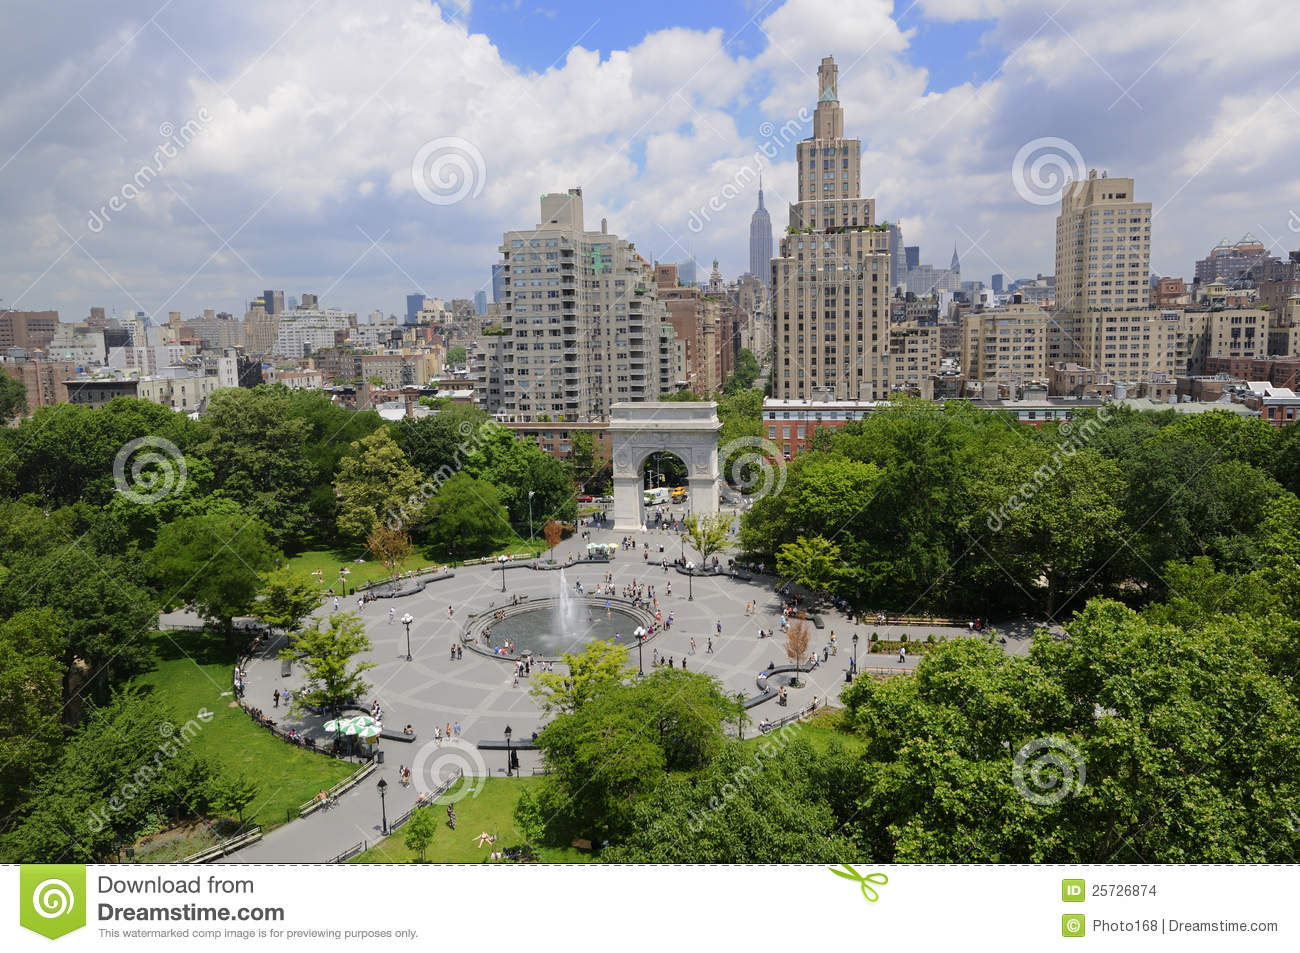 Beautiful day at Union Square, New York City